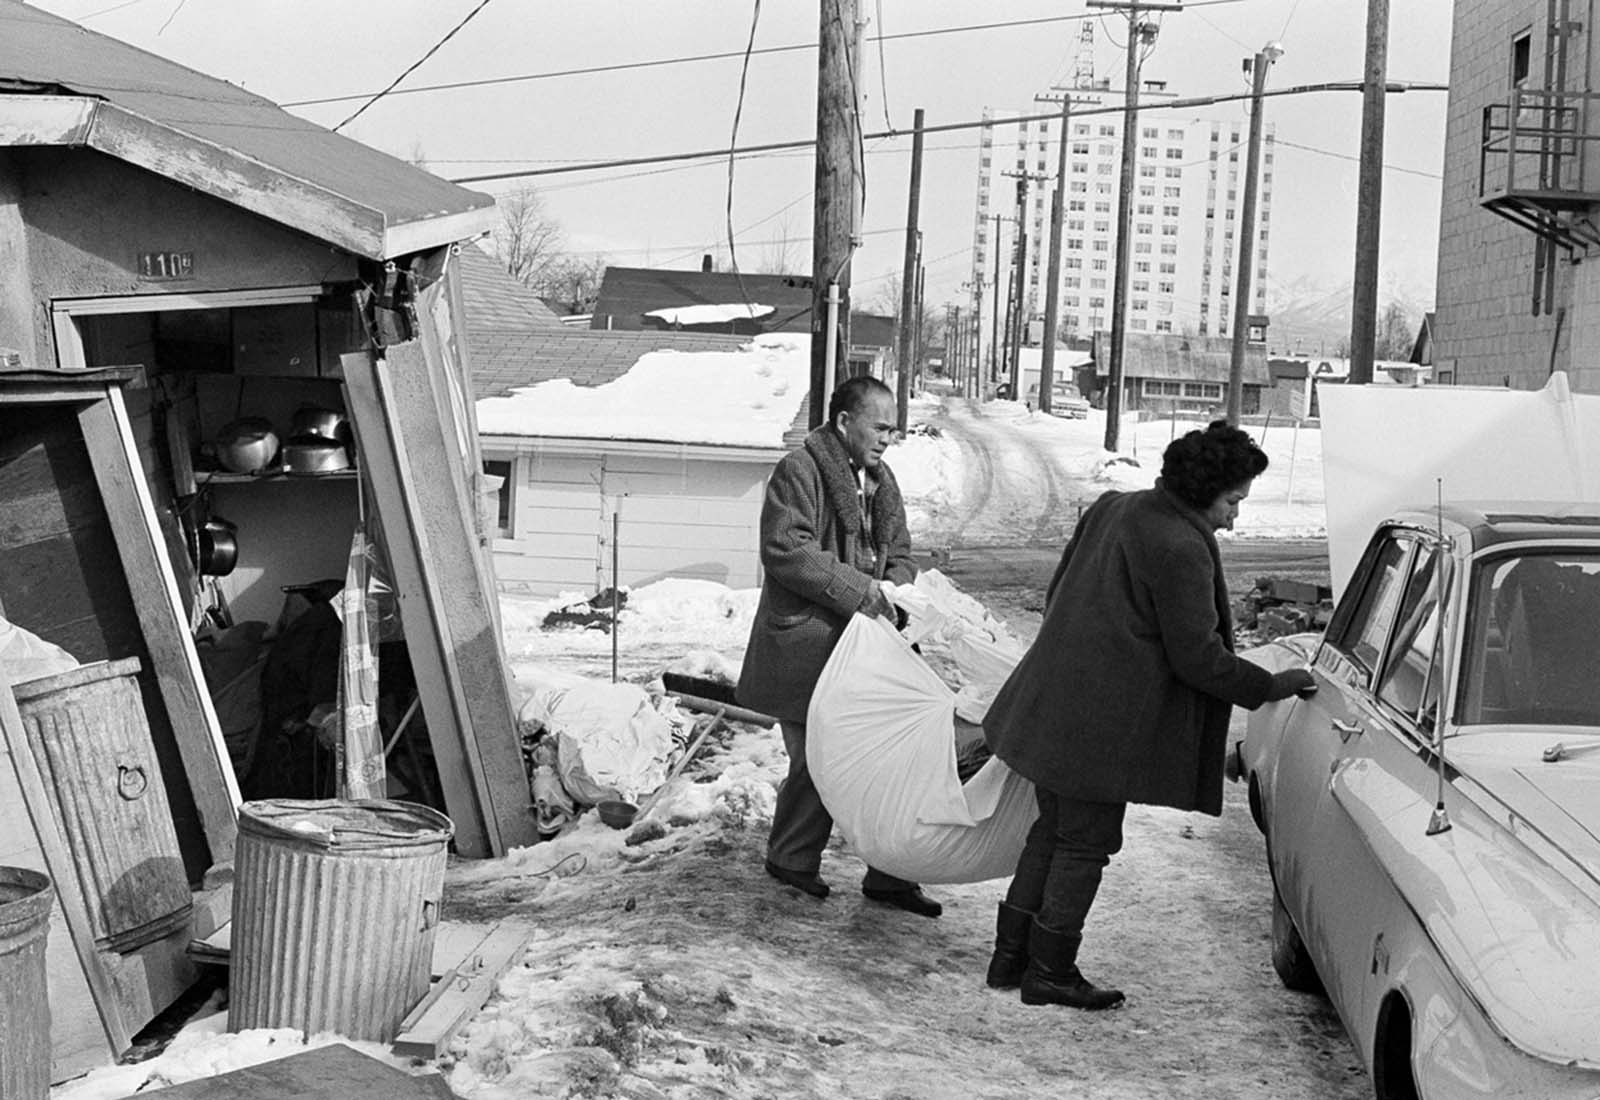 A man and his wife carry a load of possessions from their earthquake-shattered home in Anchorage, Alaska, on March 31, 1964.